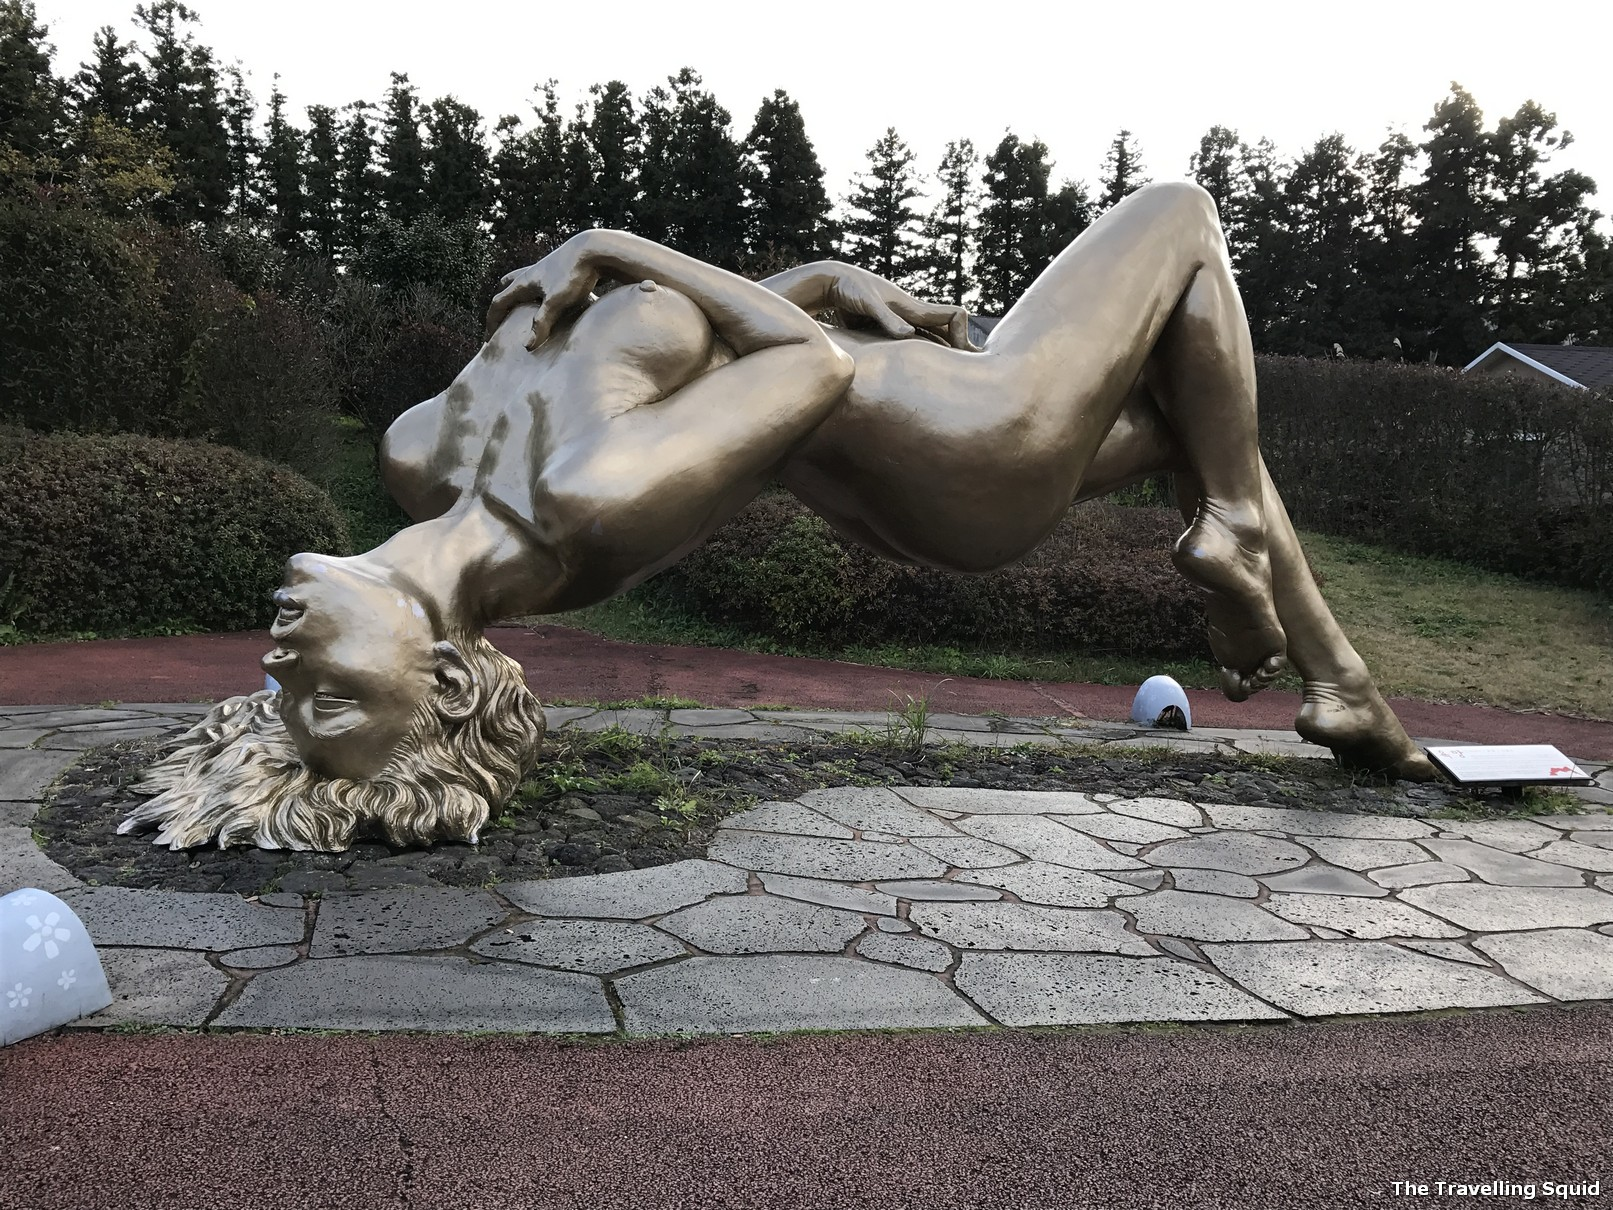 Solved. Women having sex with statue agree, rather